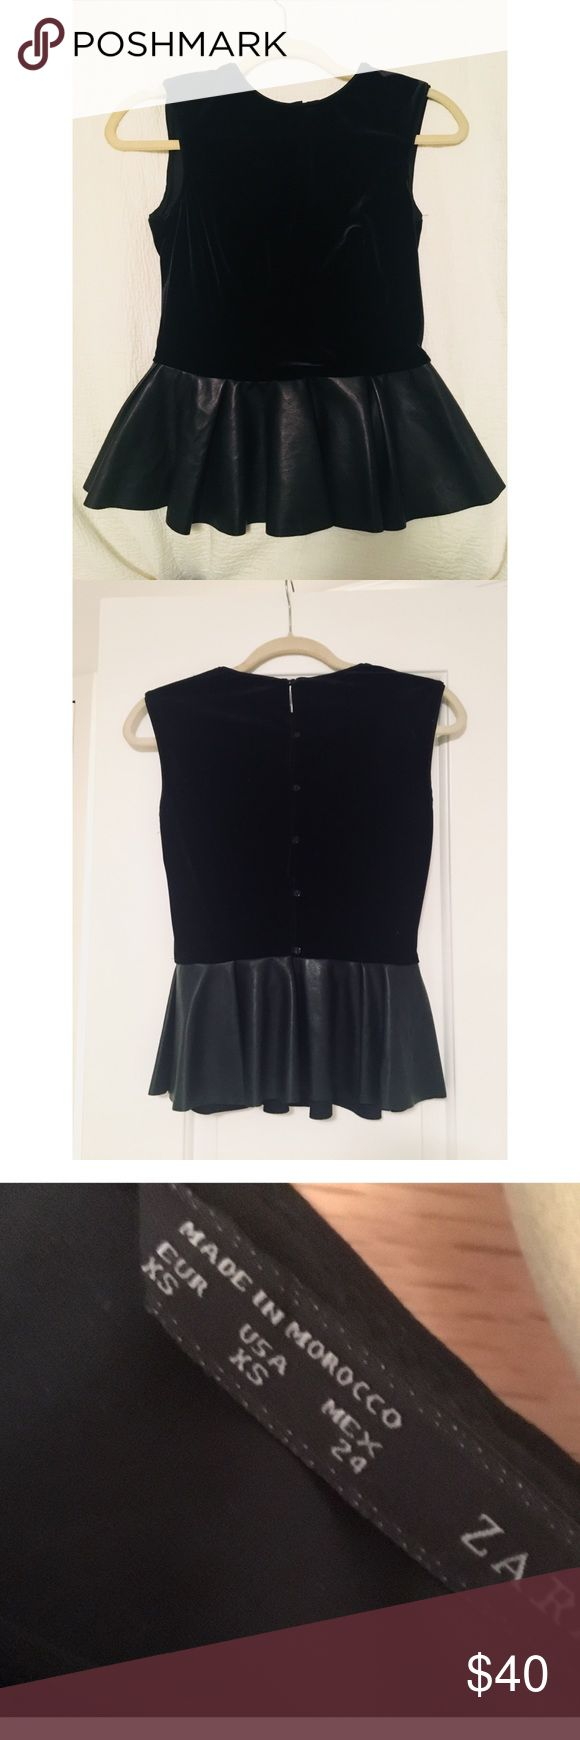 Zara Velvet and Faux Leather Peplum Top Faux leather and peplum top. Buttoned down the back. Zara Tops Blouses